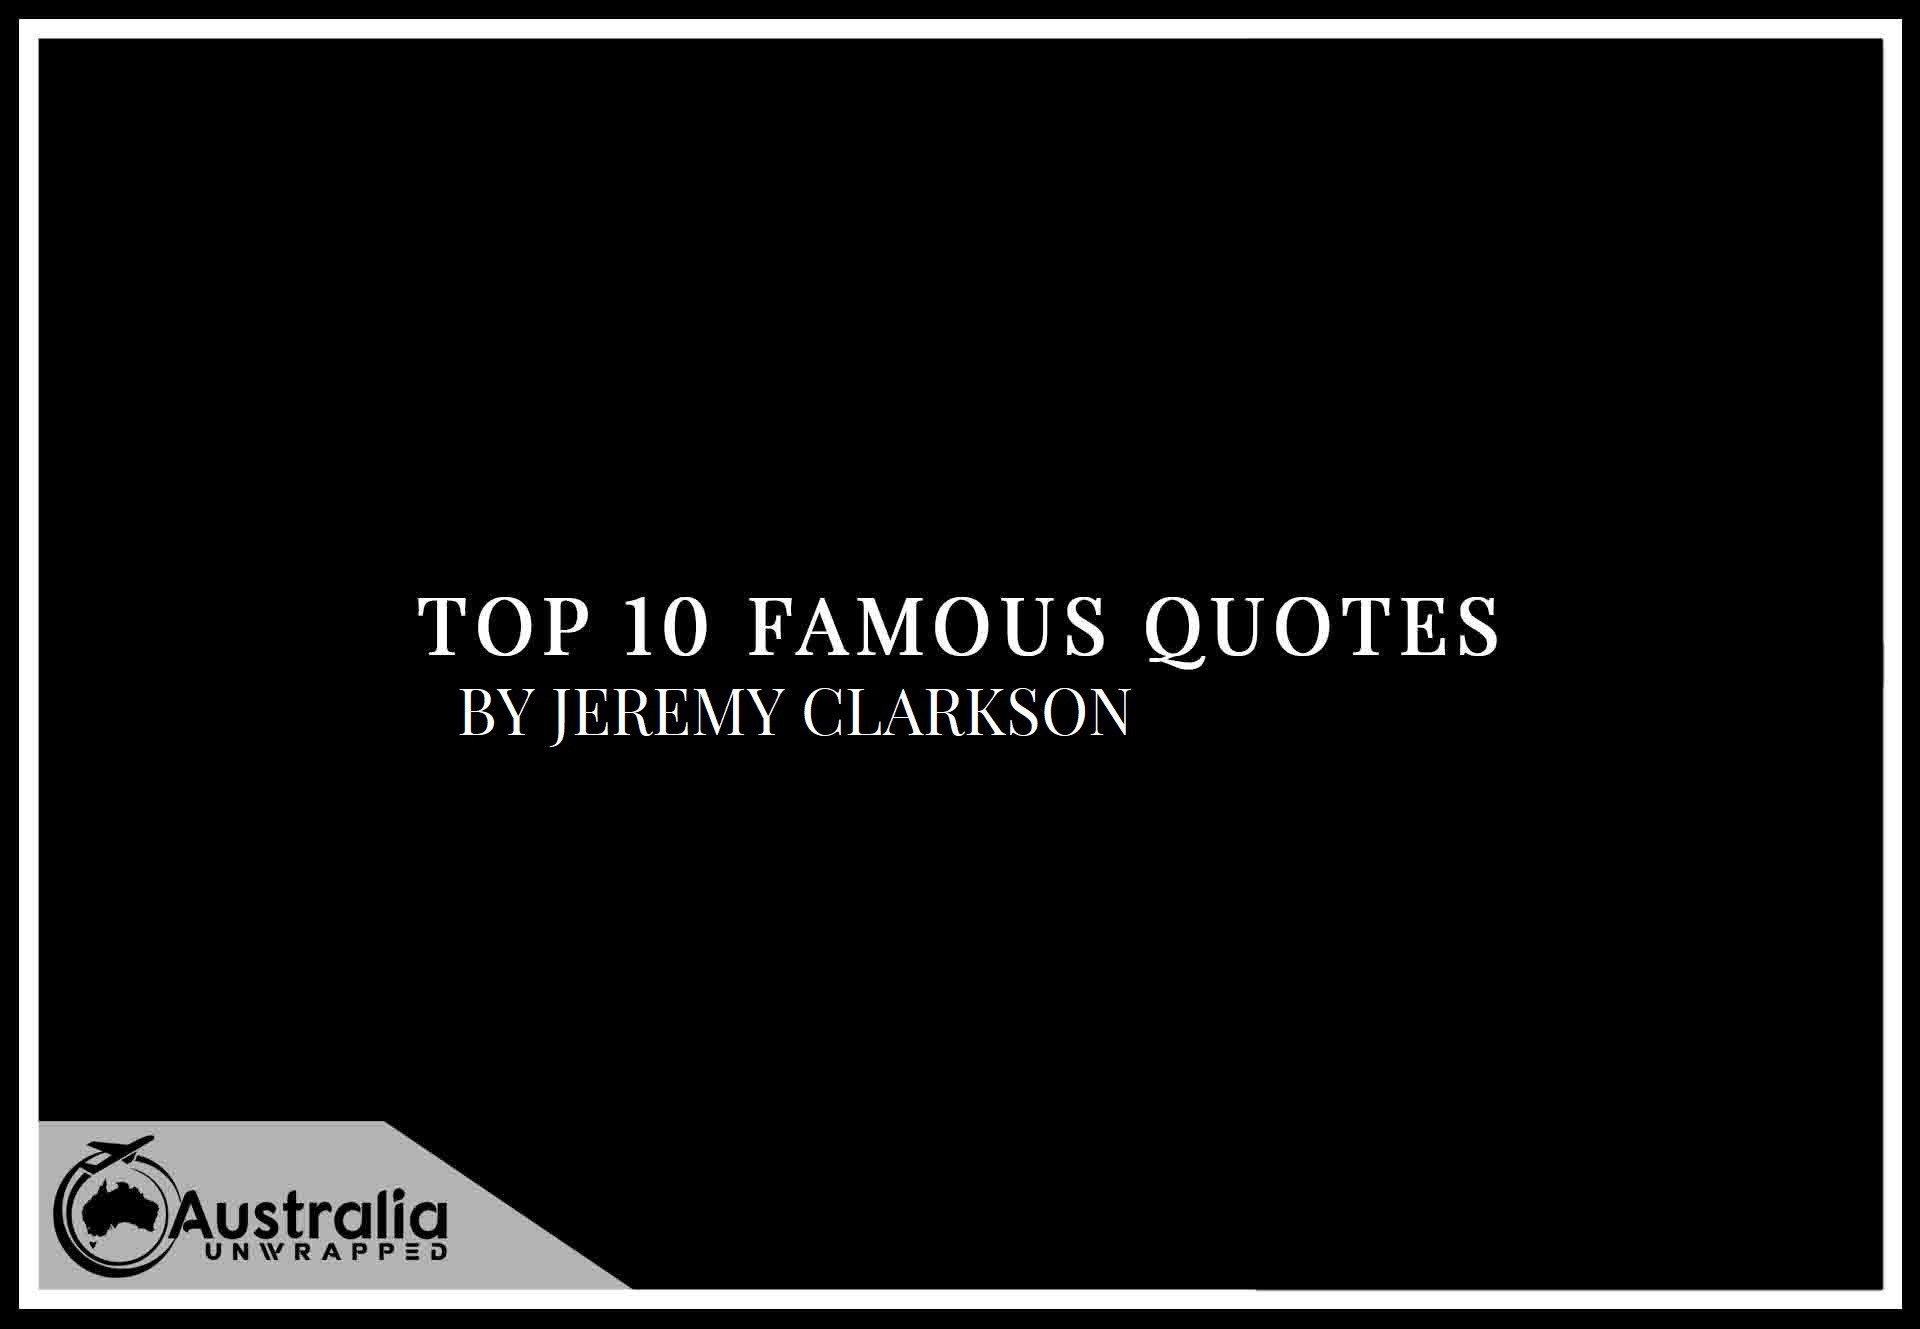 Top 10 Famous Quotes by Author Jeremy Clarkson